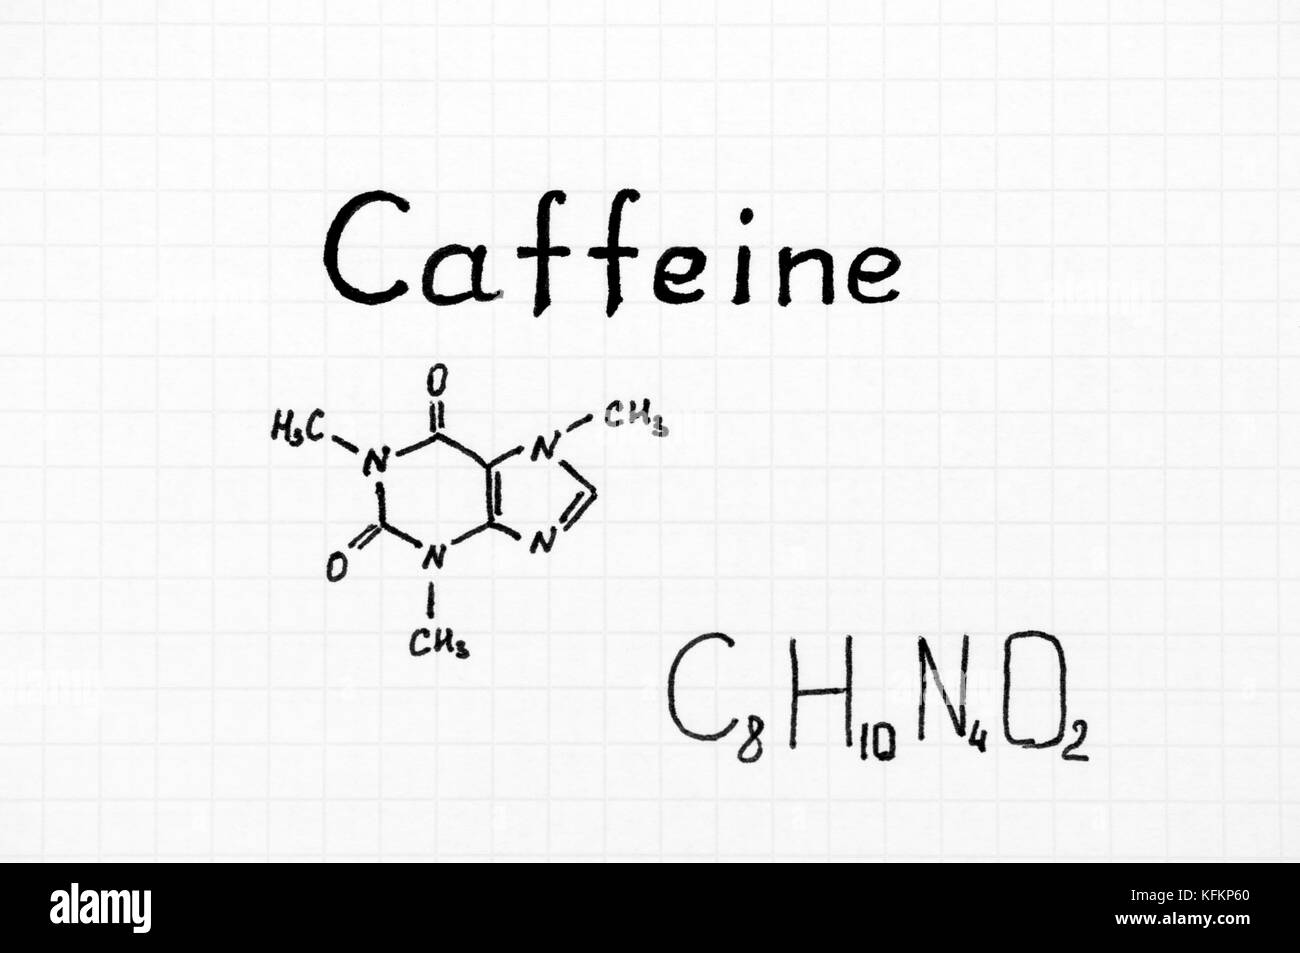 Chemical formula of caffeine close up stock photo royalty free chemical formula of caffeine close up pooptronica